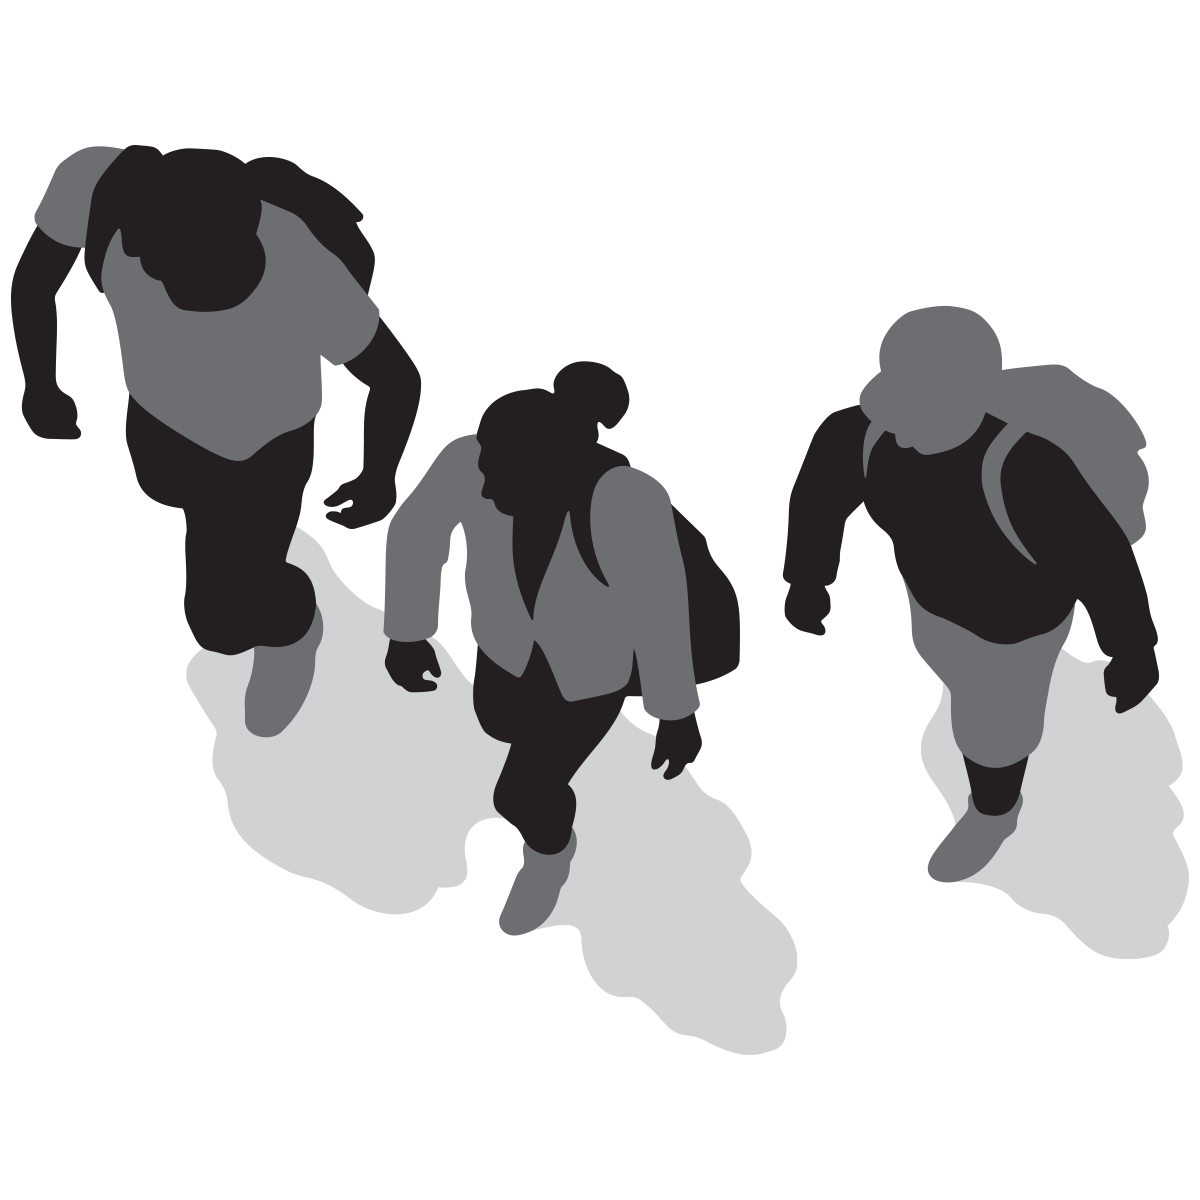 Walking people silhouette png. Cities living streets three